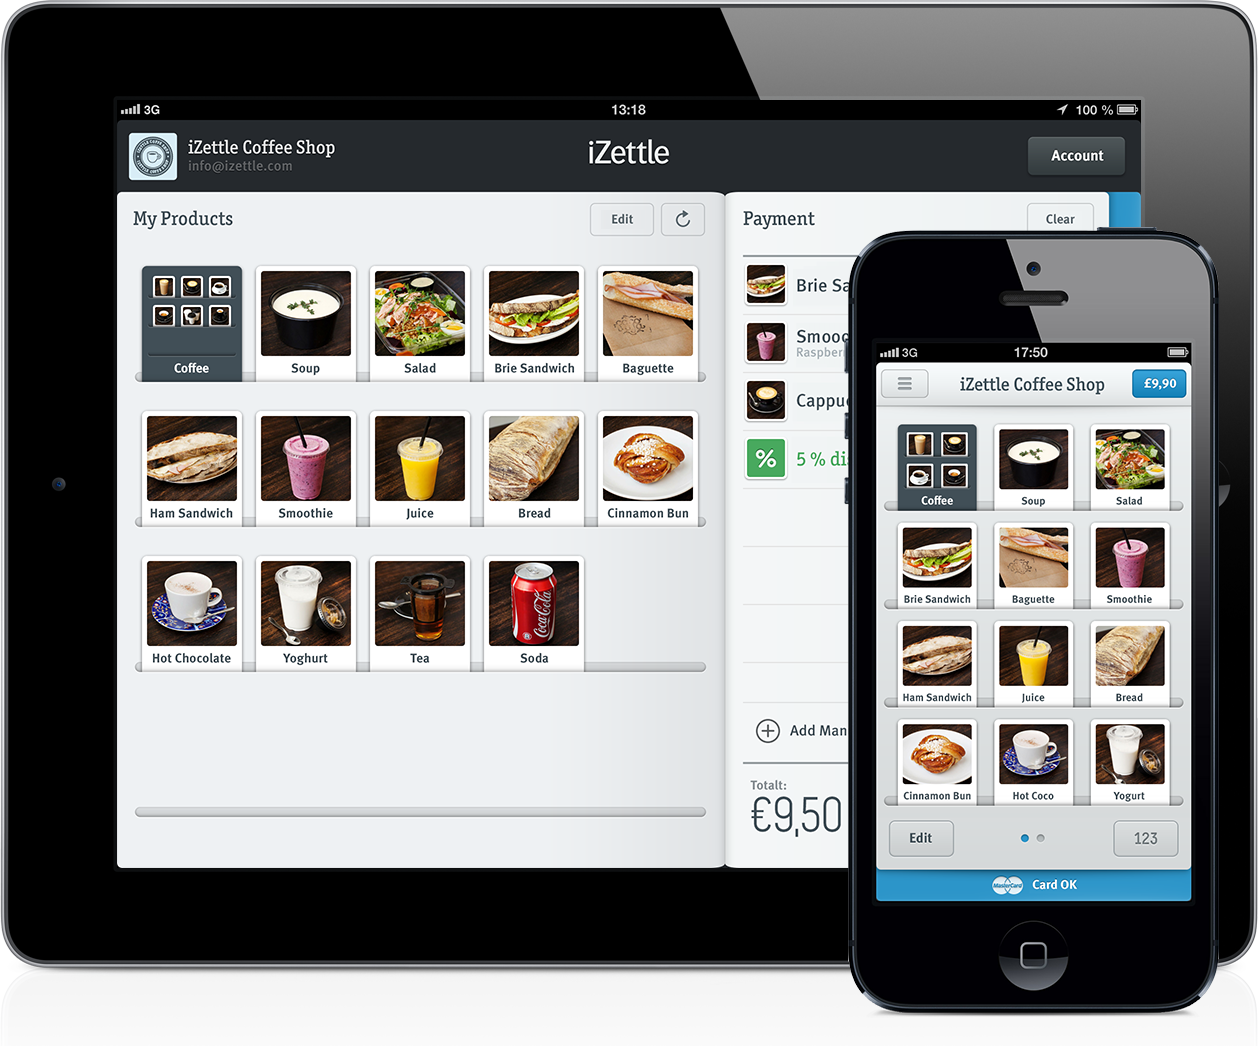 iZettle 2.3 on iPad and iPhone